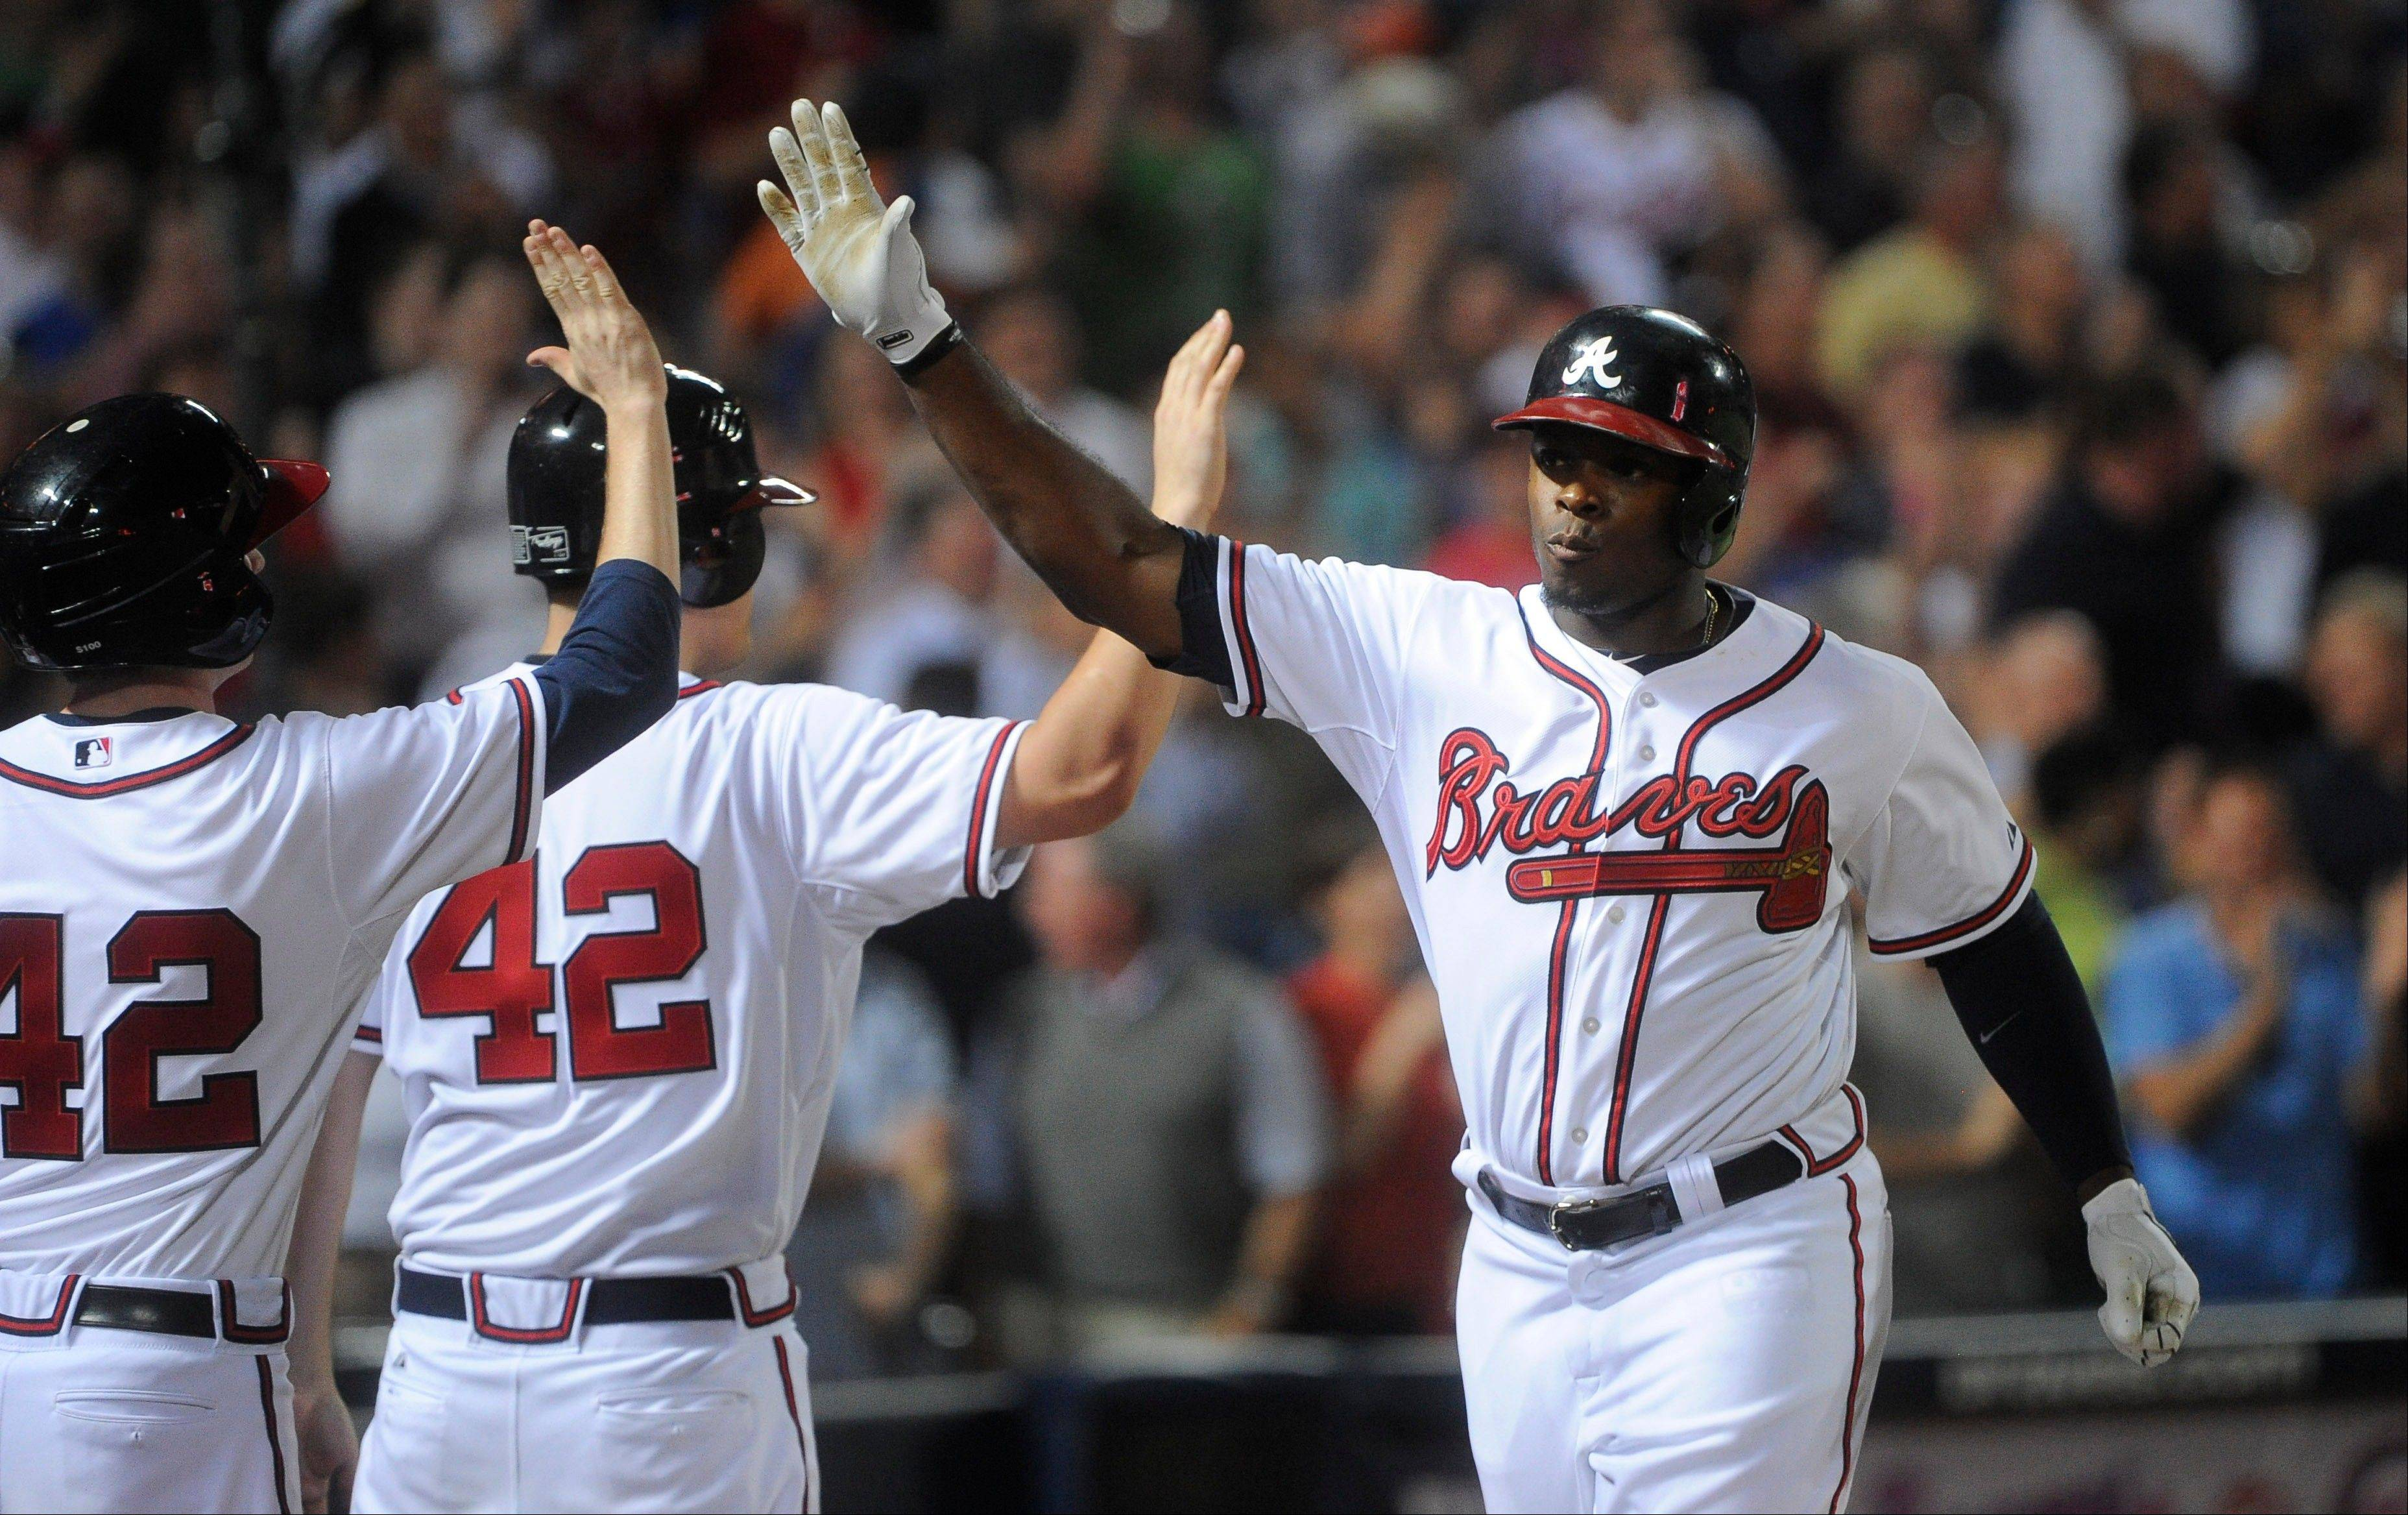 Atlanta Braves' Justin Upton, right, is congratulated as he comes back to the dugout after a home run against the Kansas City Royals during the eighth inning of a baseball game, Tuesday, April 16, 2013, in Atlanta. Atlanta won 6-3.